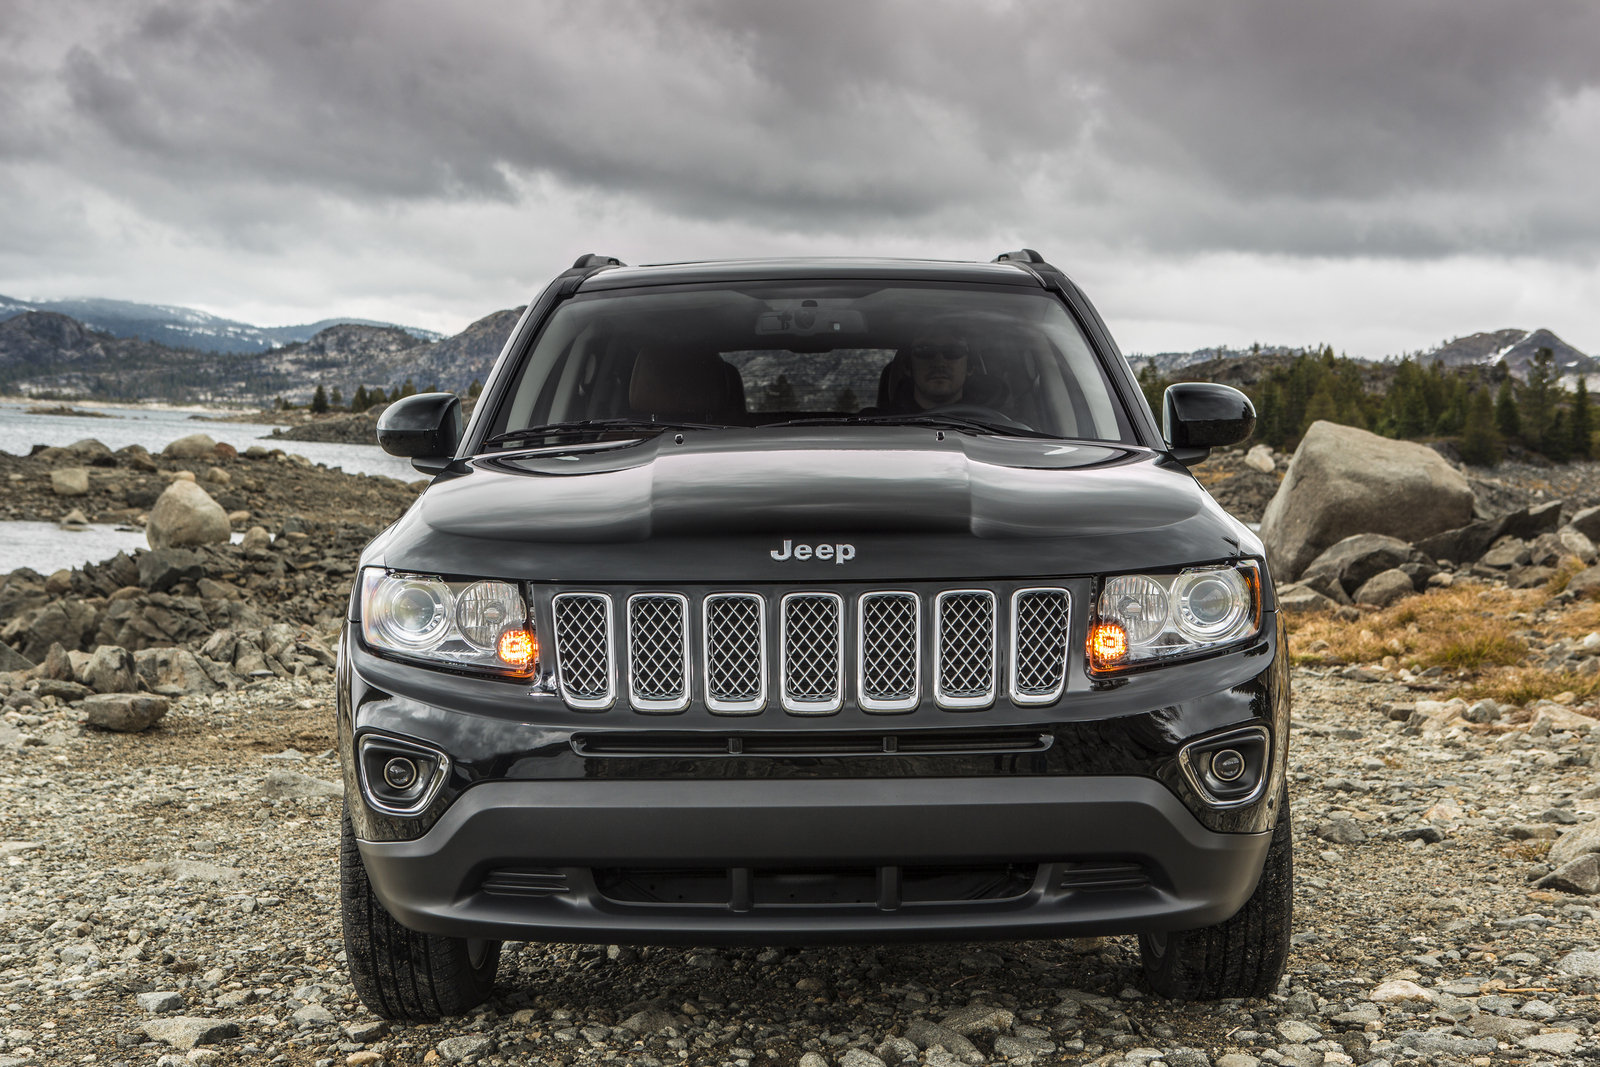 2014 jeep compass picture 520810 car review top speed. Cars Review. Best American Auto & Cars Review